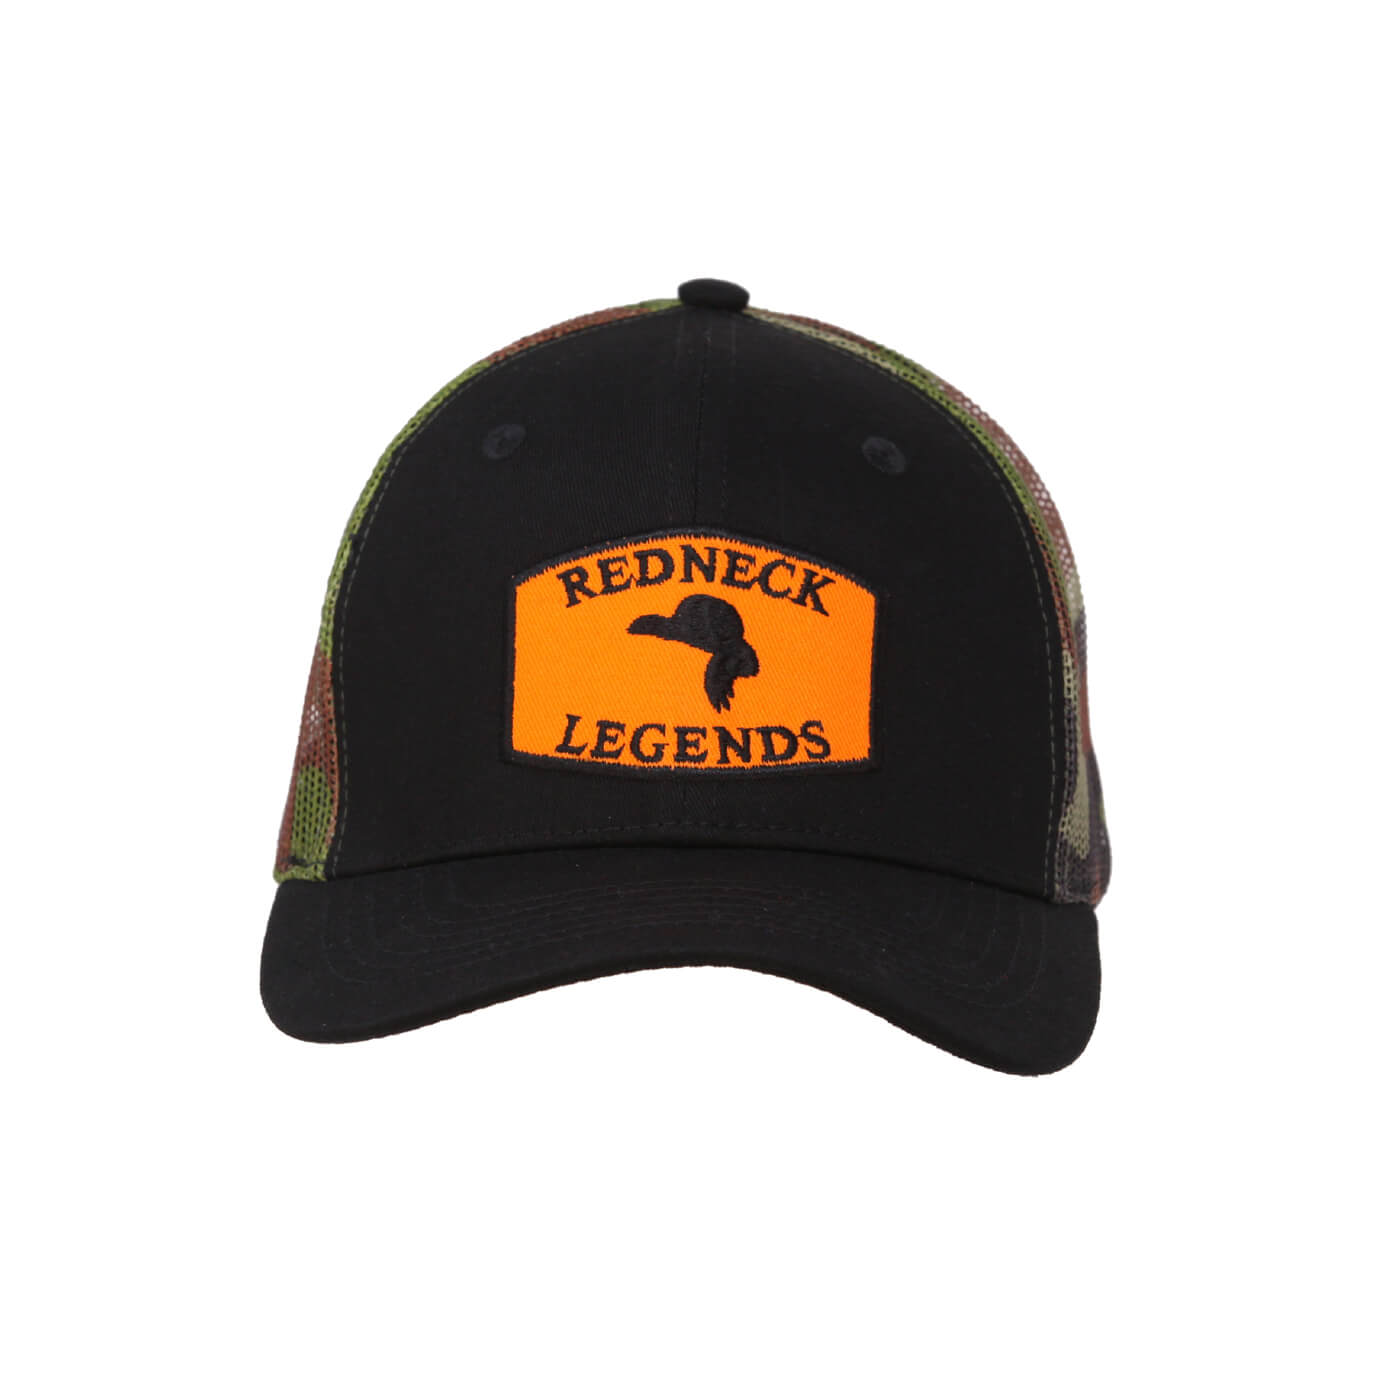 Redneck Legends Trucker Snapback